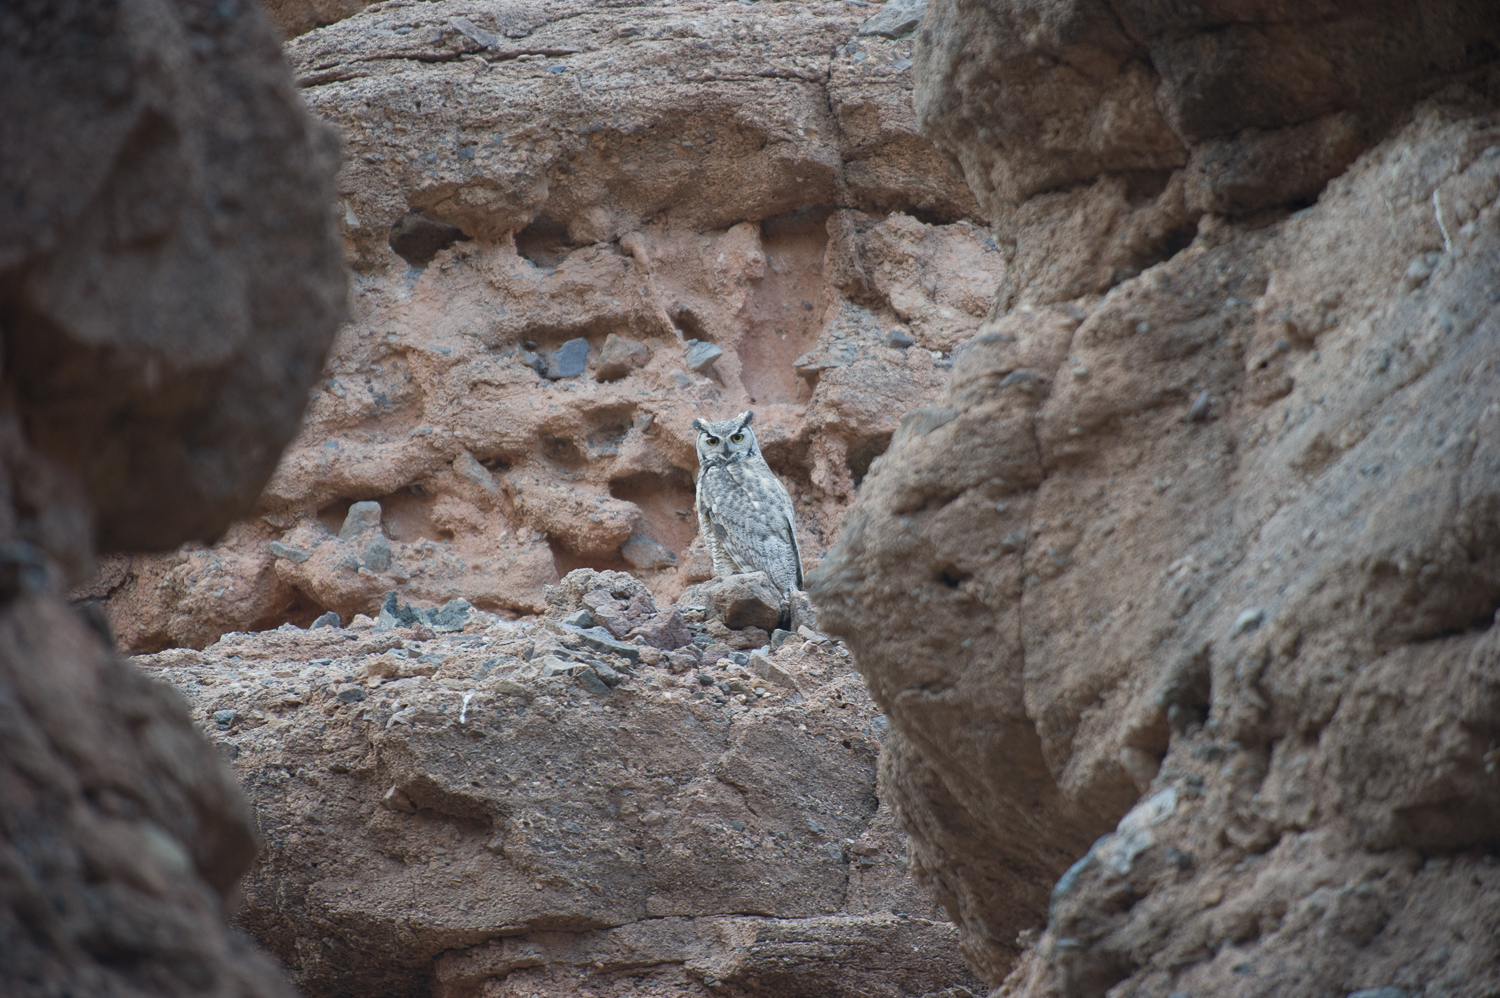 This owl flew down the slot canyon only a few feet above my head as I was walking up the canyon.